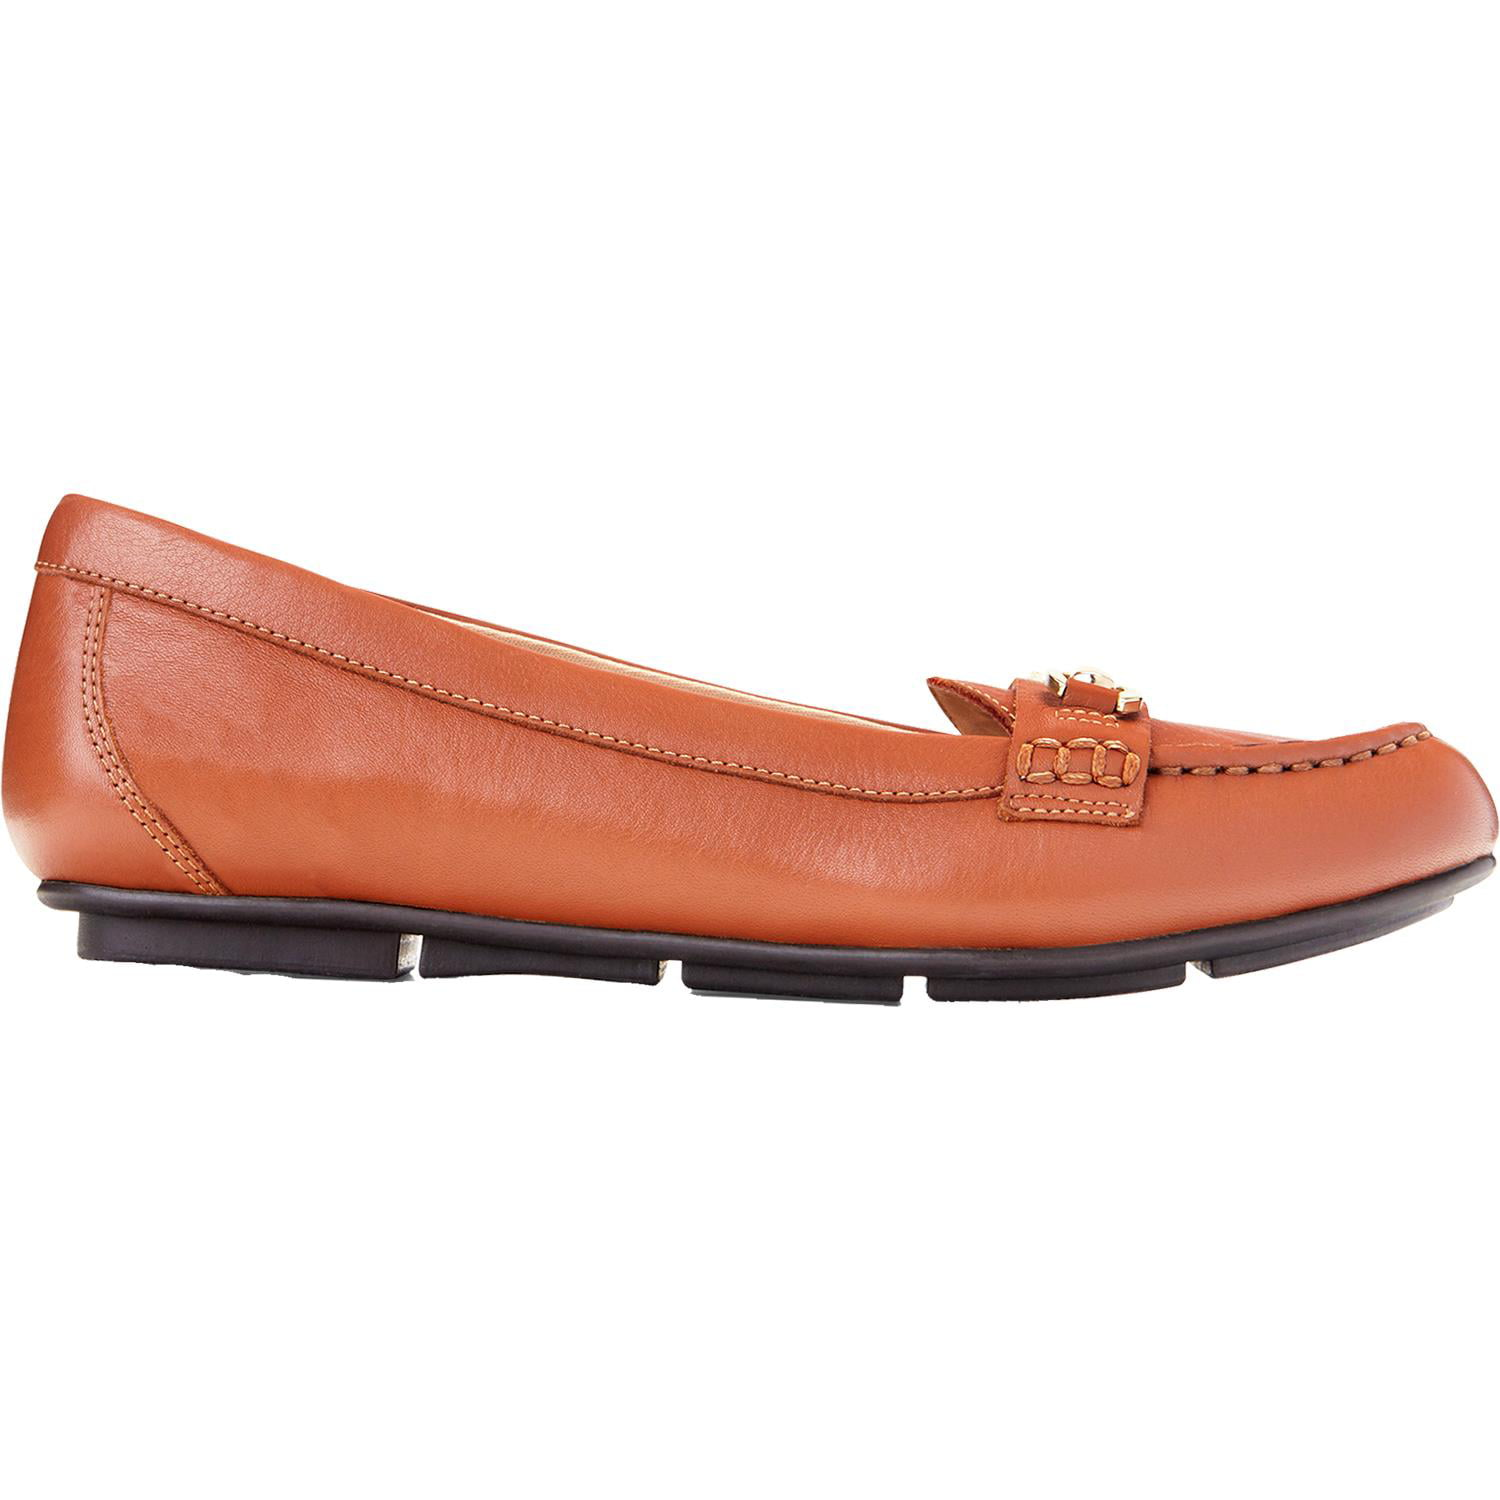 0bbfa4a99bc Vionic with Orthaheel Technology Women s Kenya Loafer - Walmart.com